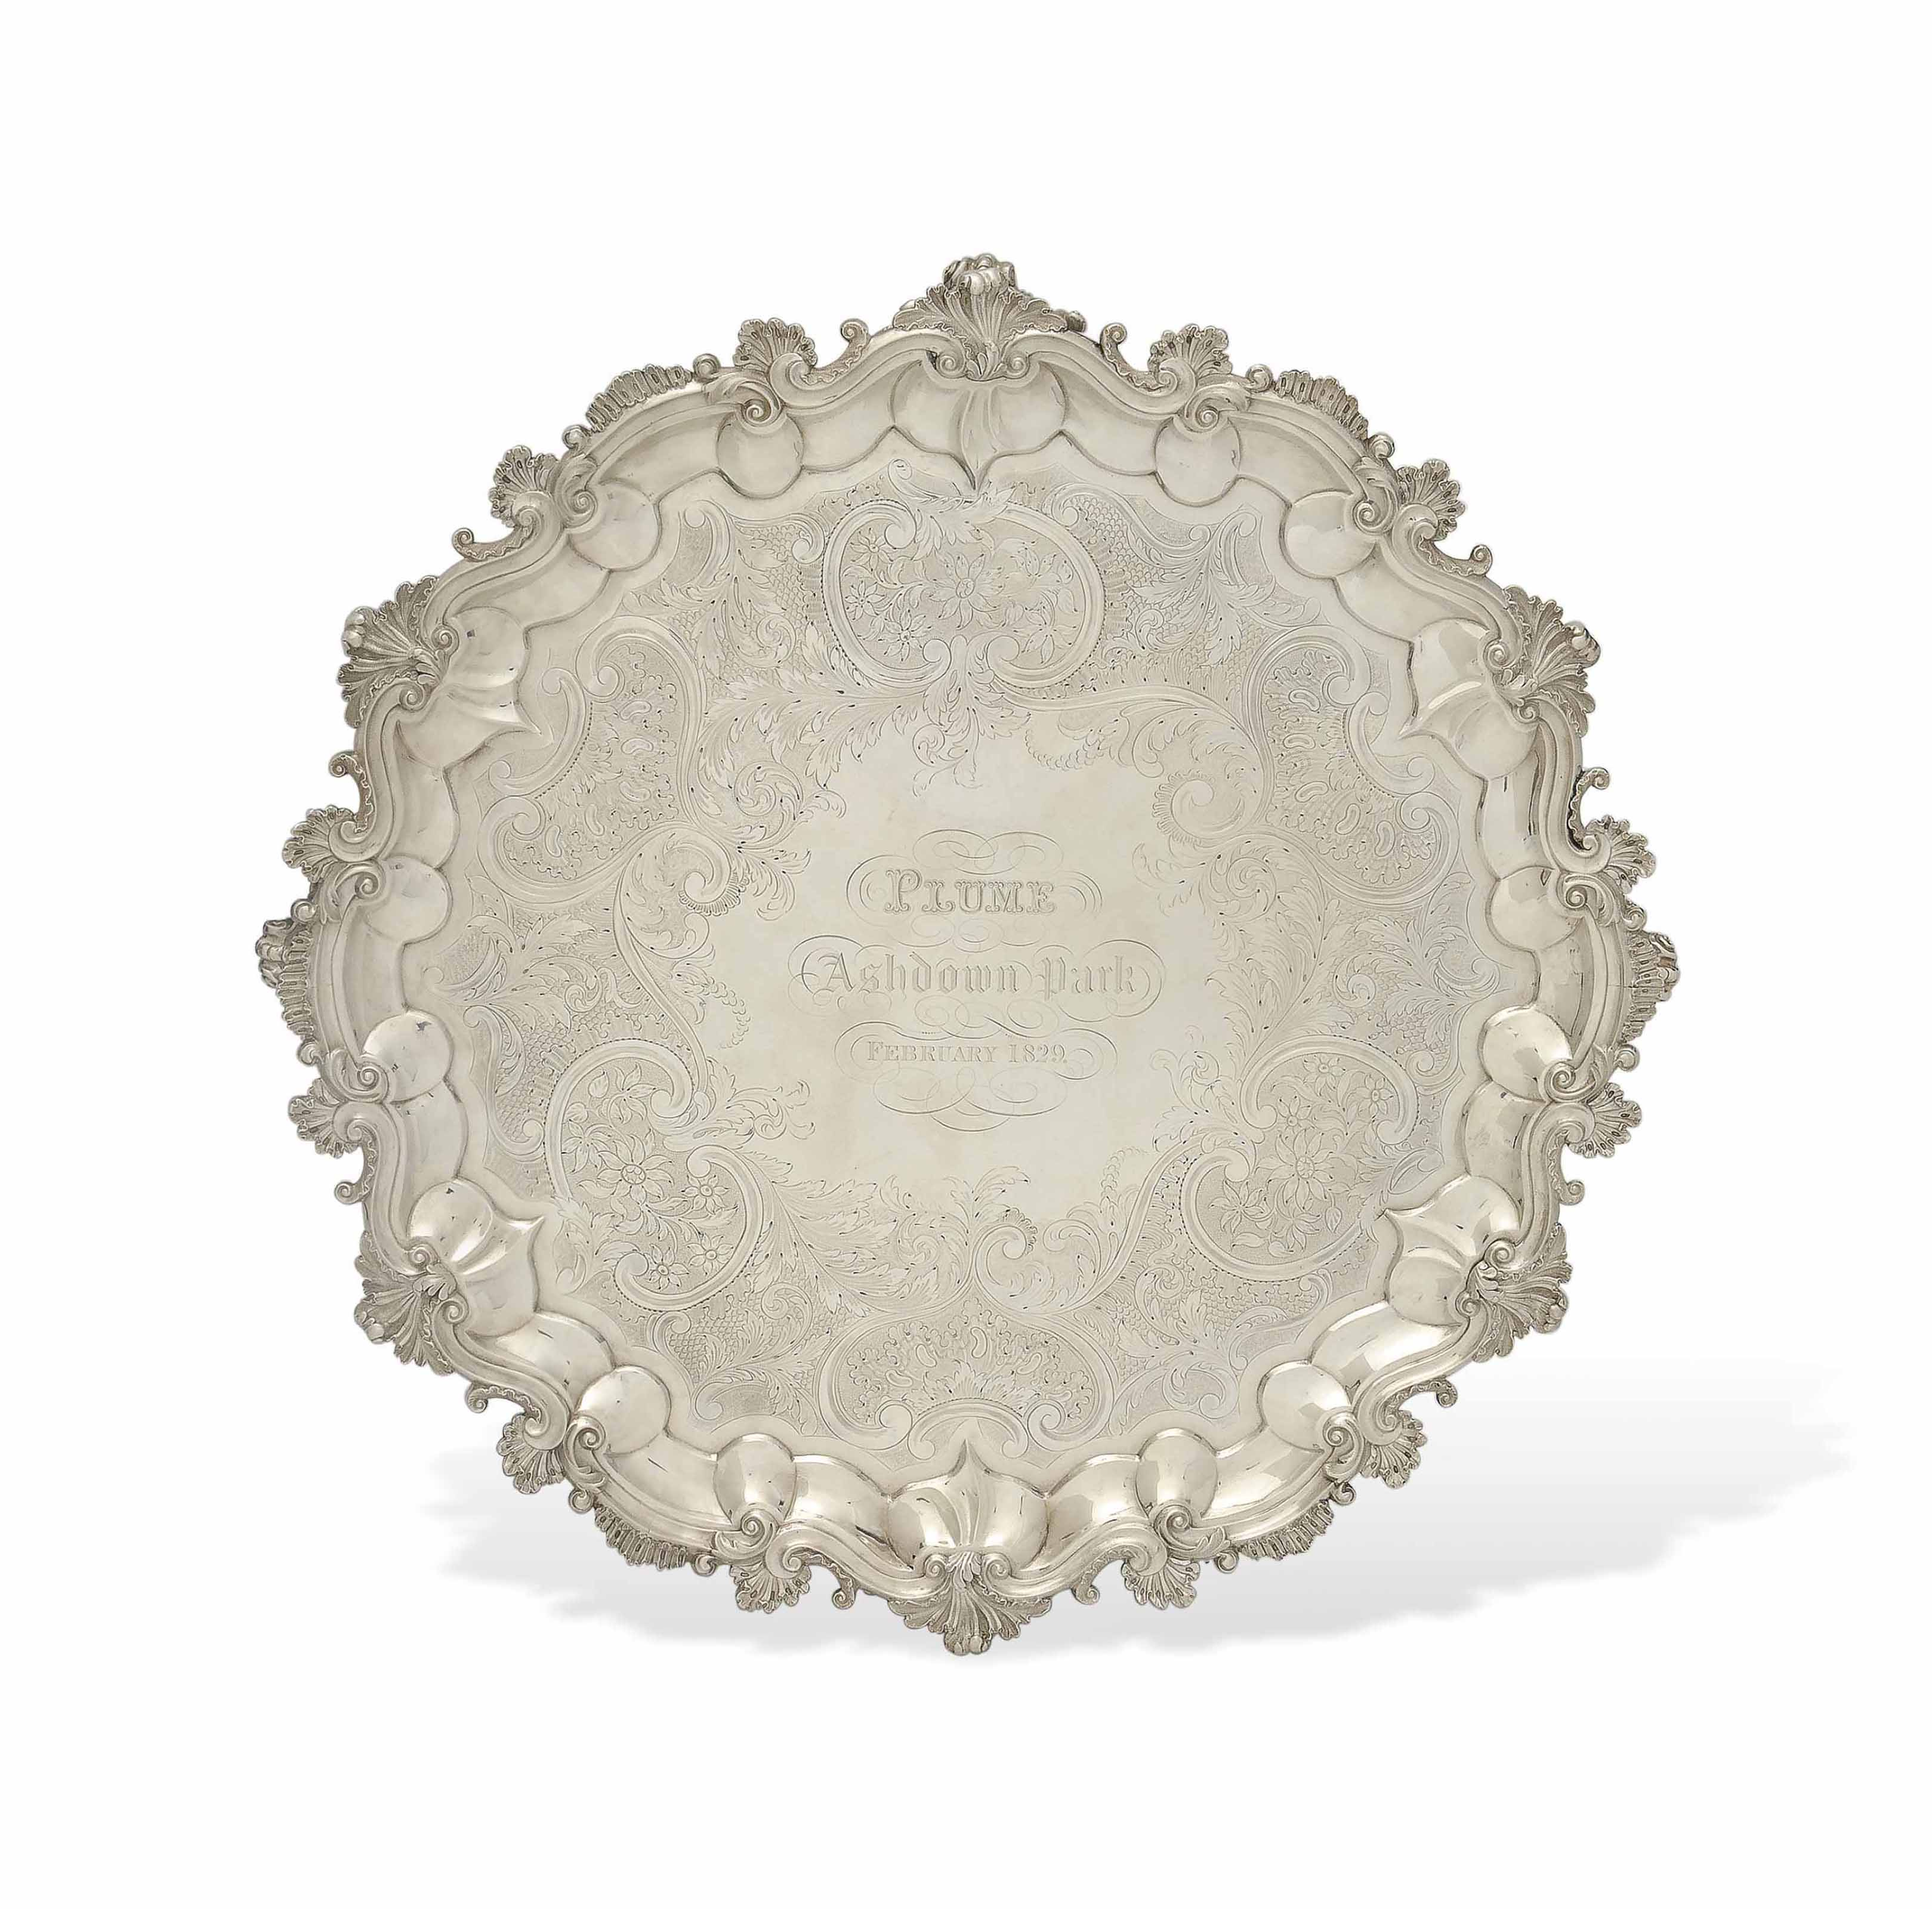 A LARGE WILLIAM IV SILVER RACING PRIZE SALVER